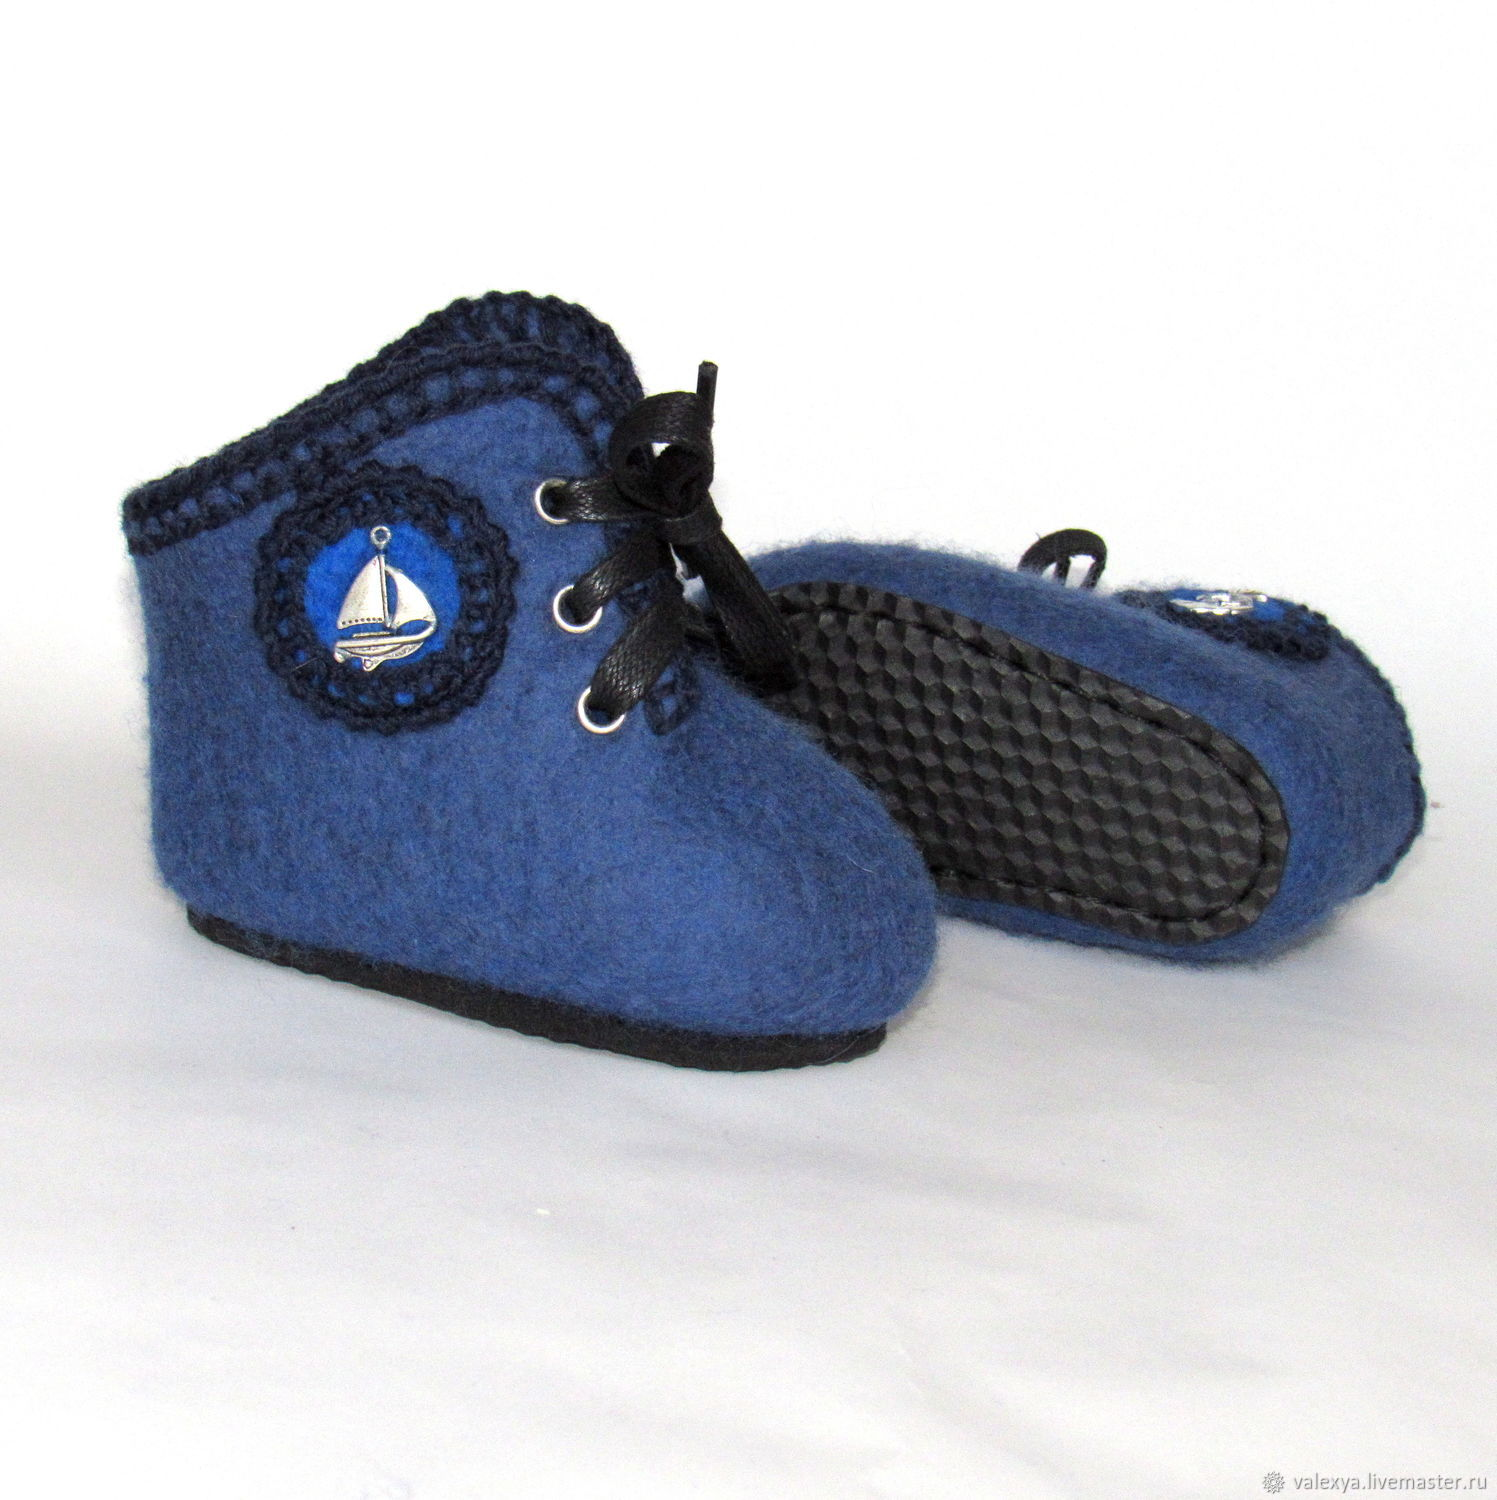 Jung Online Felted Shoes With Jung